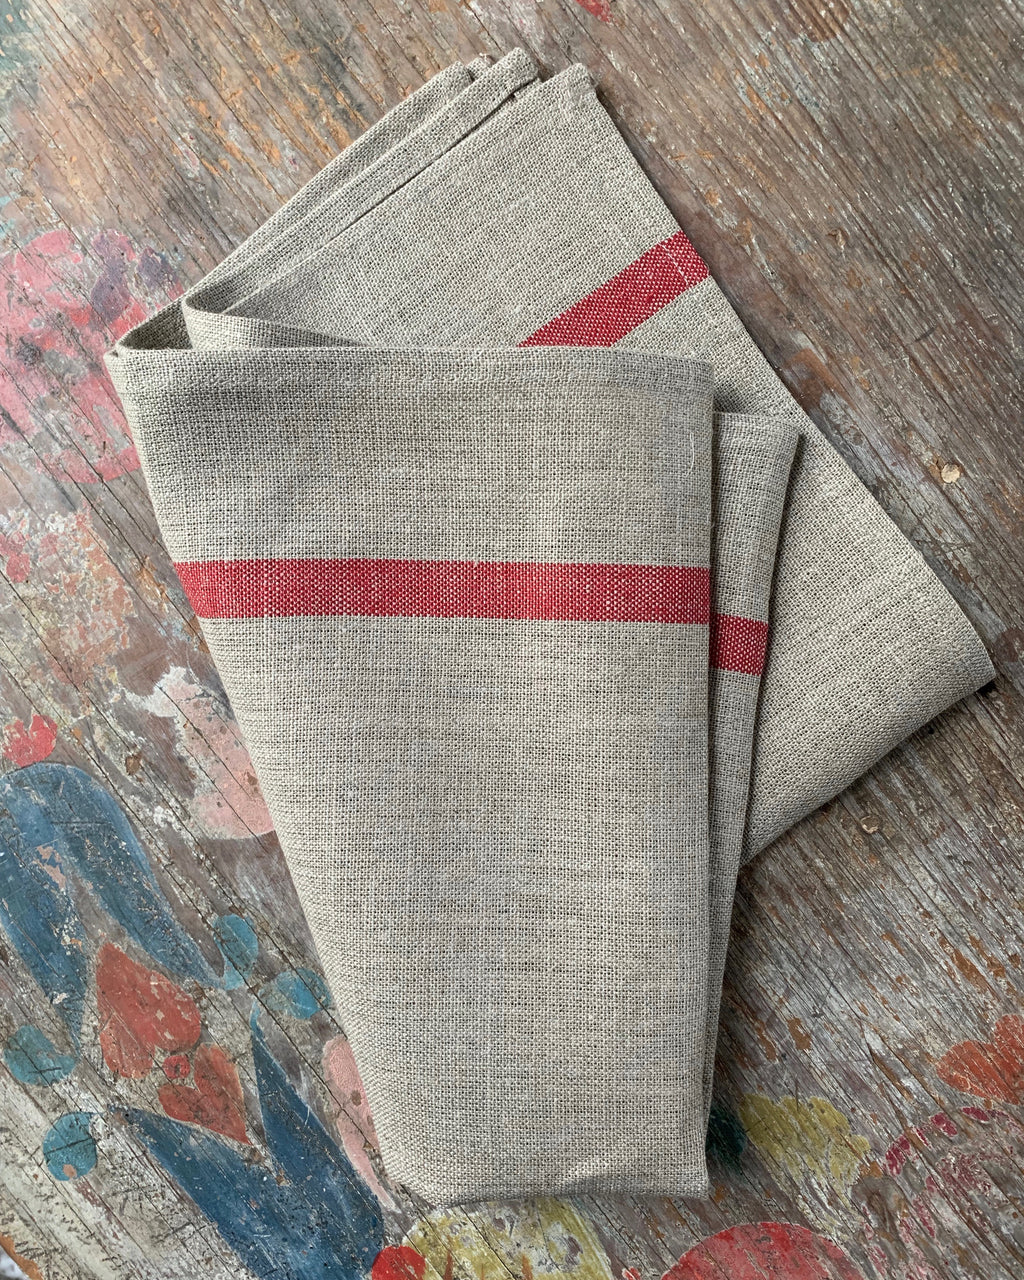 Thick Linen Kitchen Cloth: Natural with Red Stripe